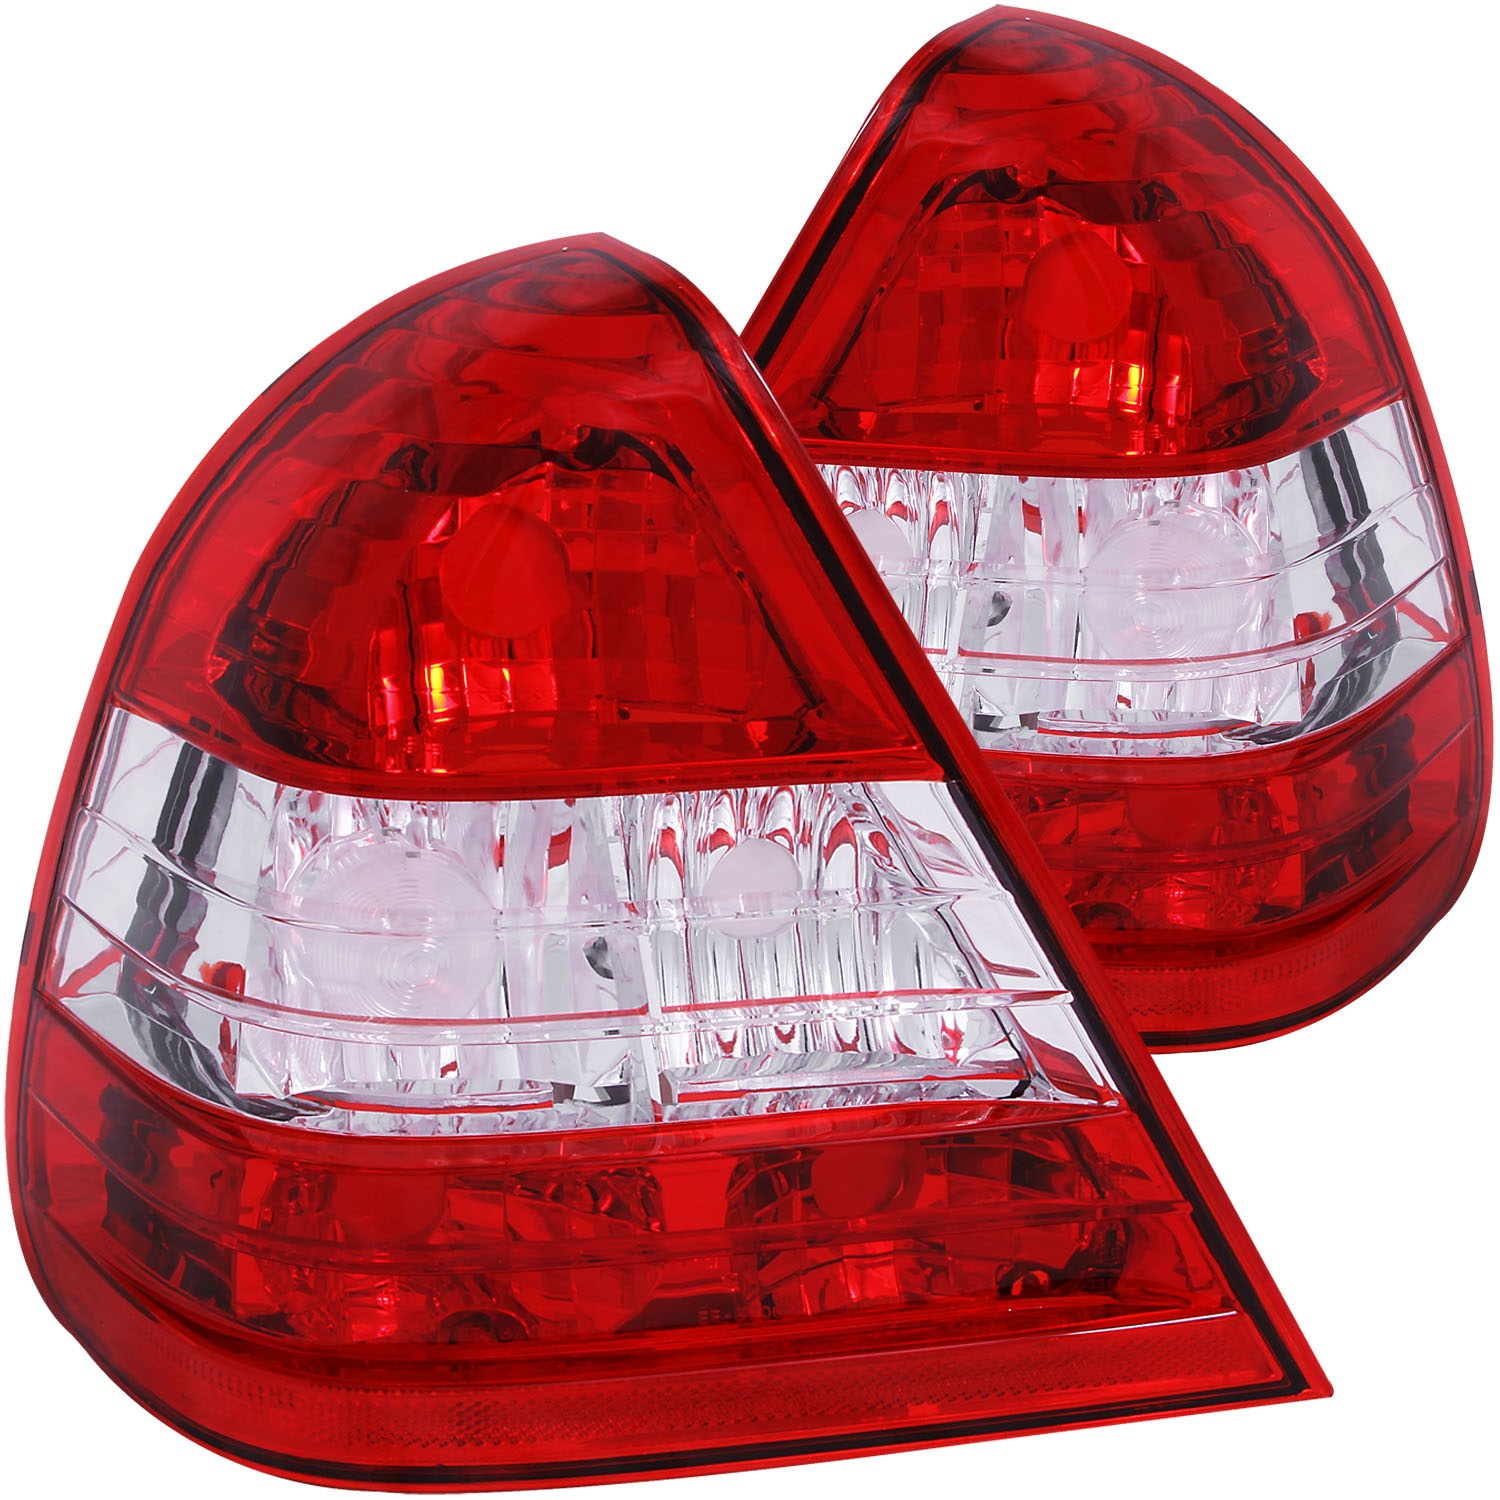 Anzo USA 221157 Tail Light Assembly Fits 94-00 C220 C230 C280 C36 AMG C43 AMG